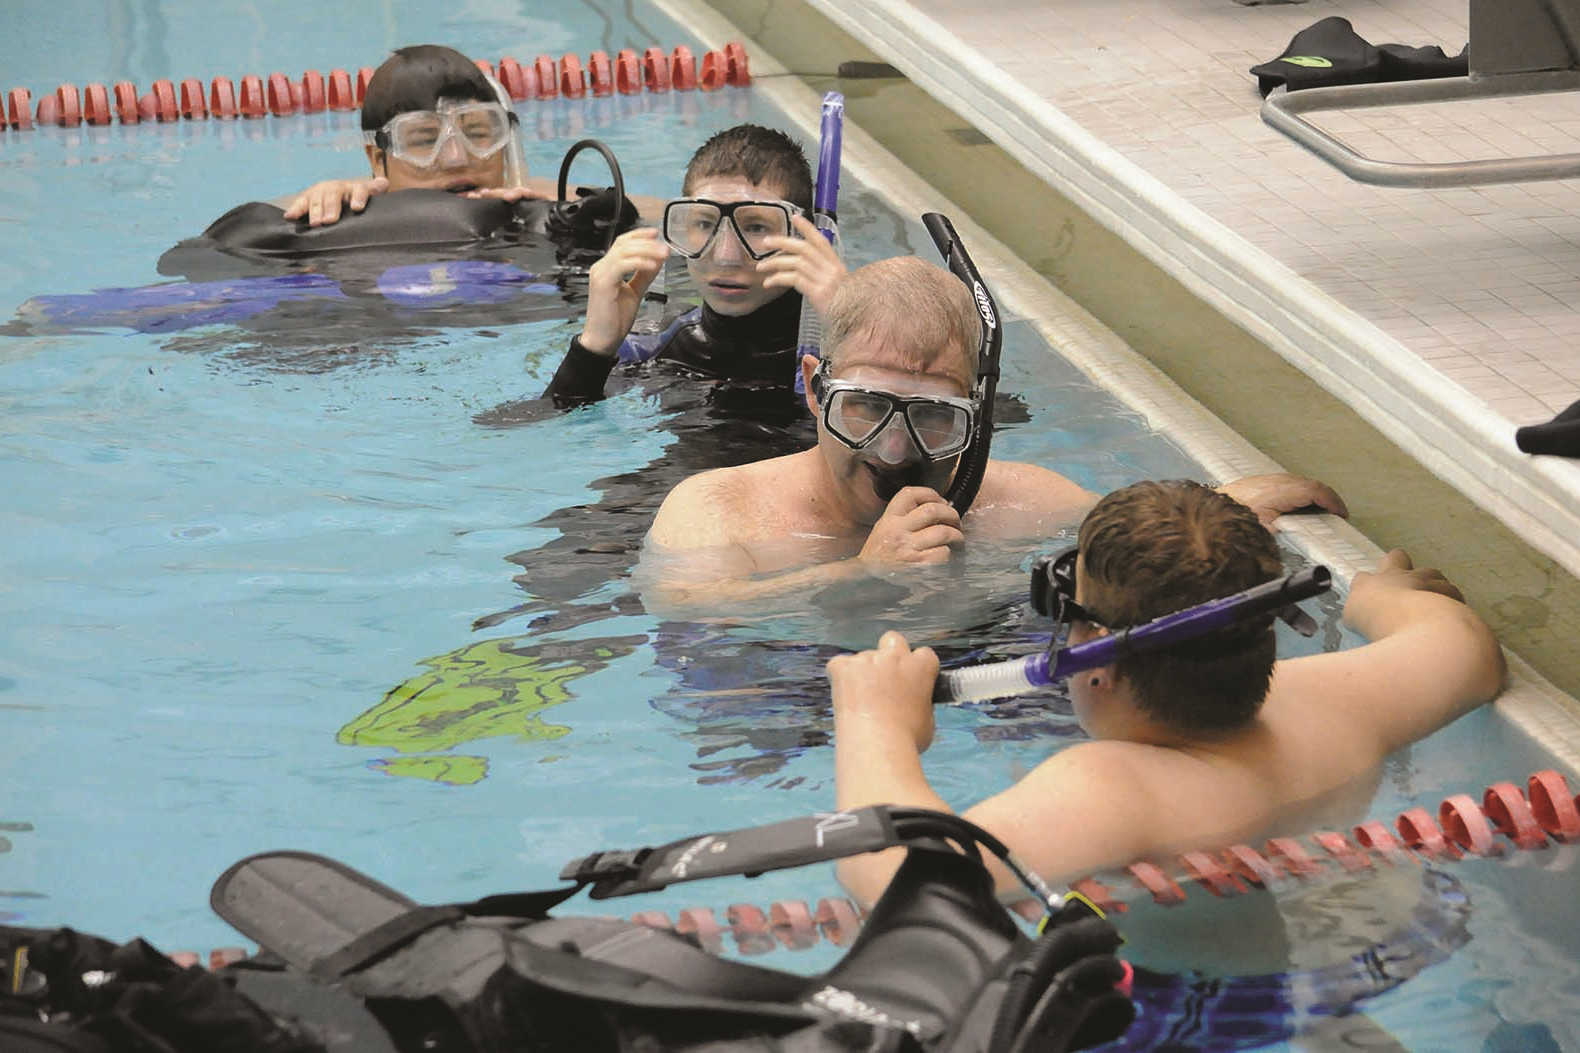 Dr. Chris Schwilk works with students from Yellow Breeches to complete their scuba certification before applying their new skills during ocean dives off the coast of Florida.